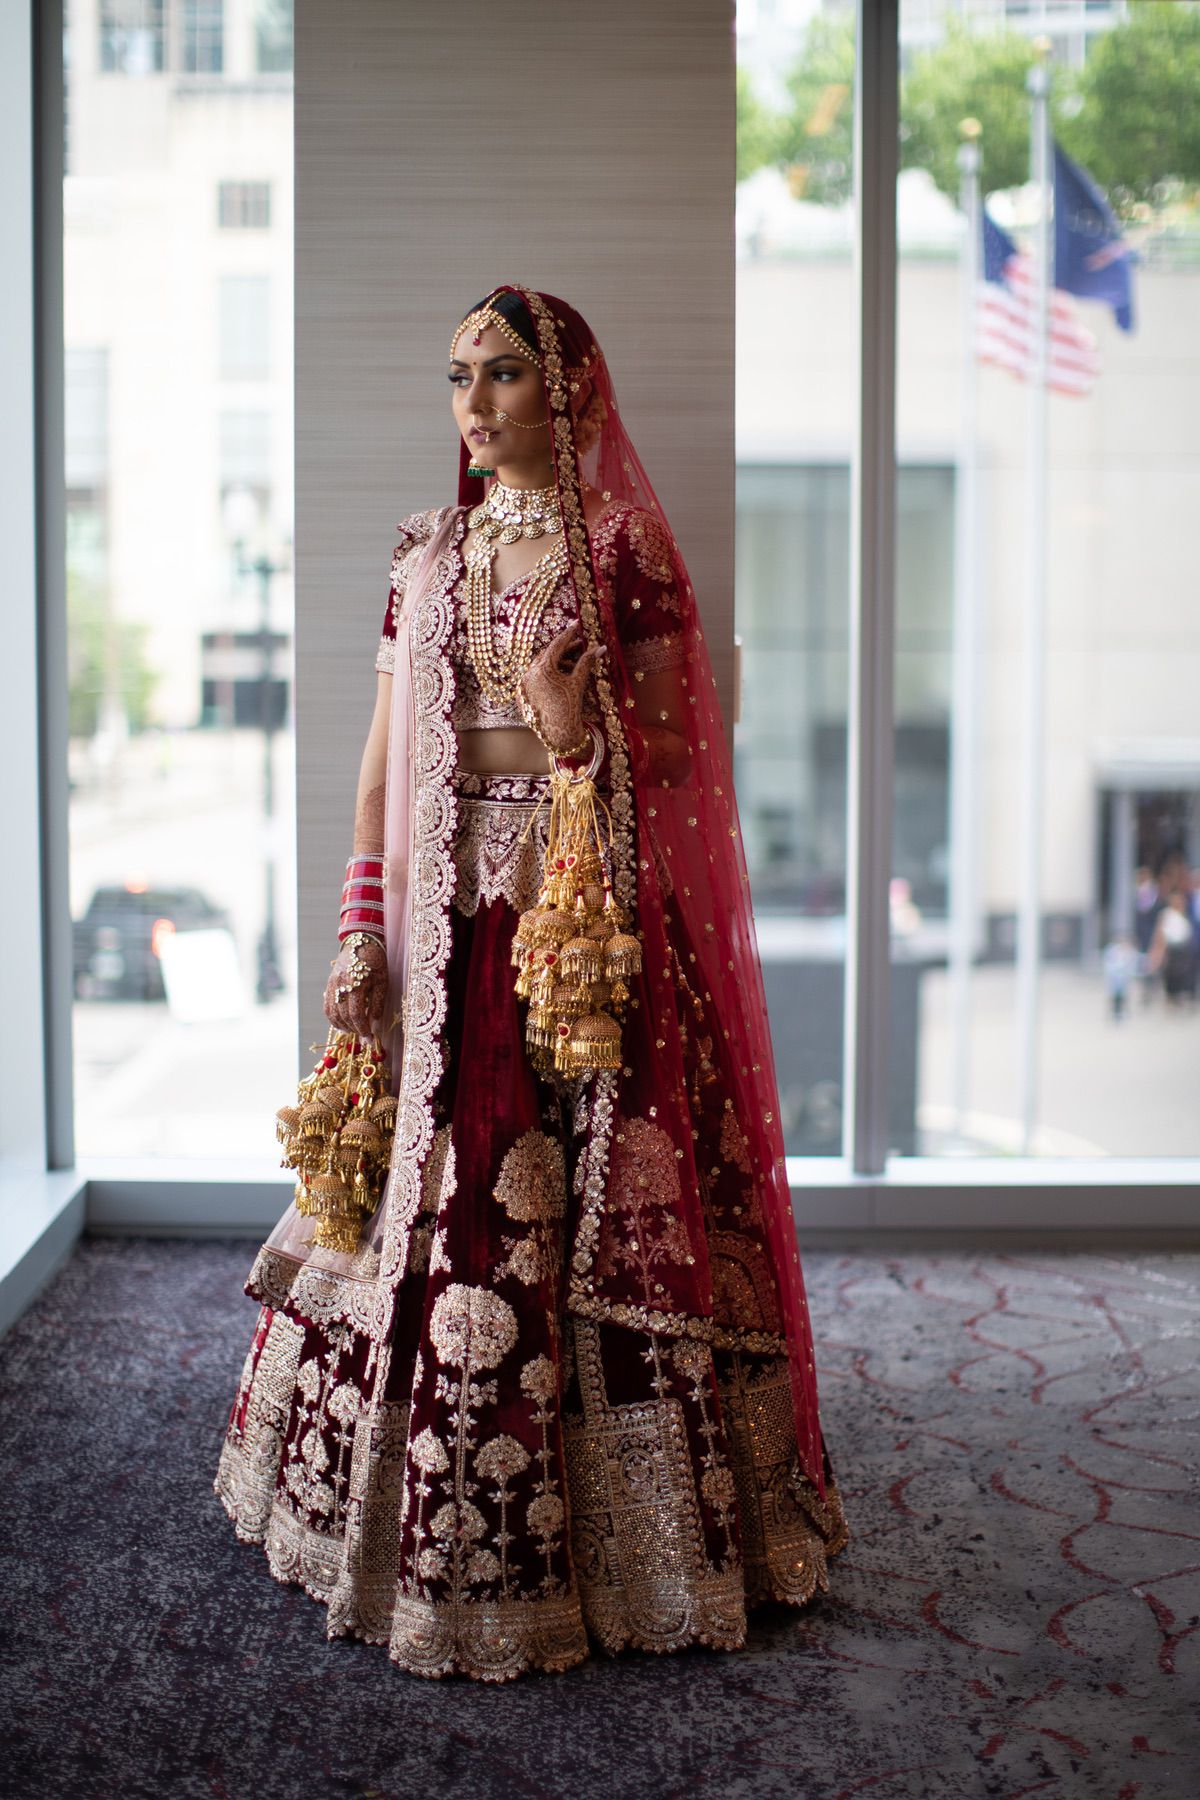 Le_Cape_Weddings_-_Serena_and_Kylash_-_Chicago_South_Asian_Wedding_-_Bride_Getting_Ready-65.jpg